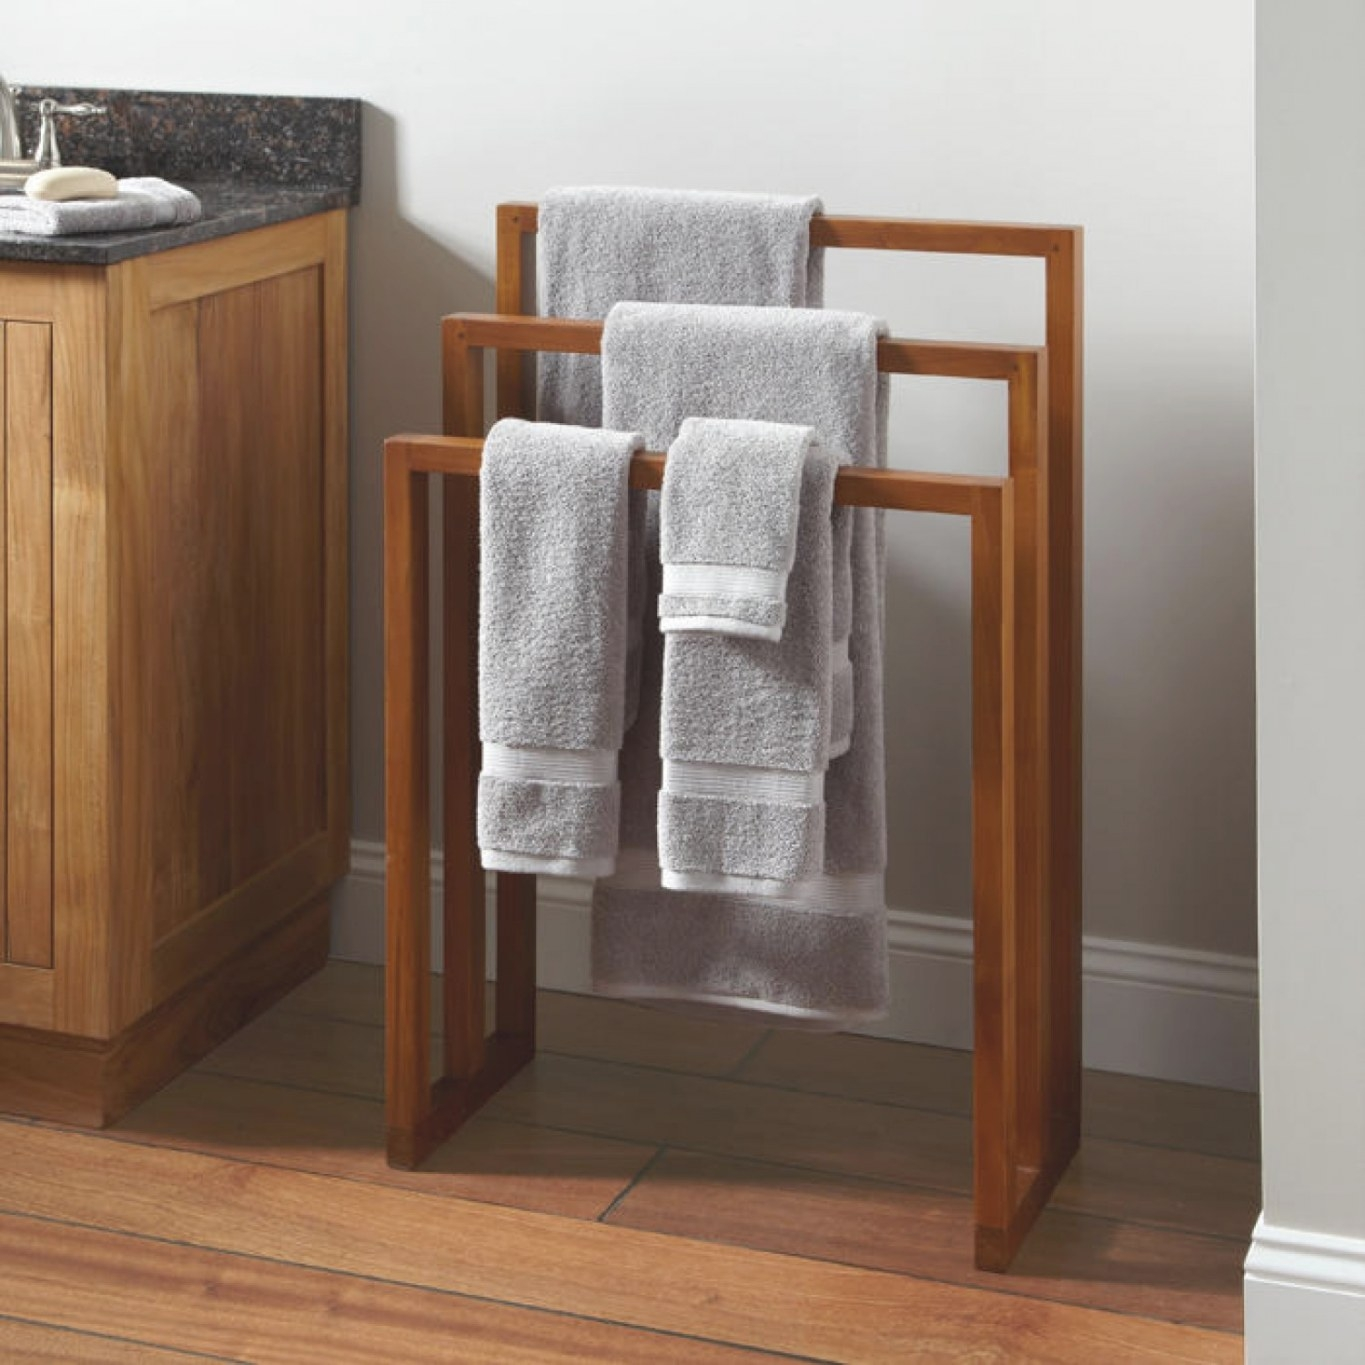 Bathroom: Perfect Solution For Bathroom Storageusing with regard to Towel Racks For Small Bathrooms